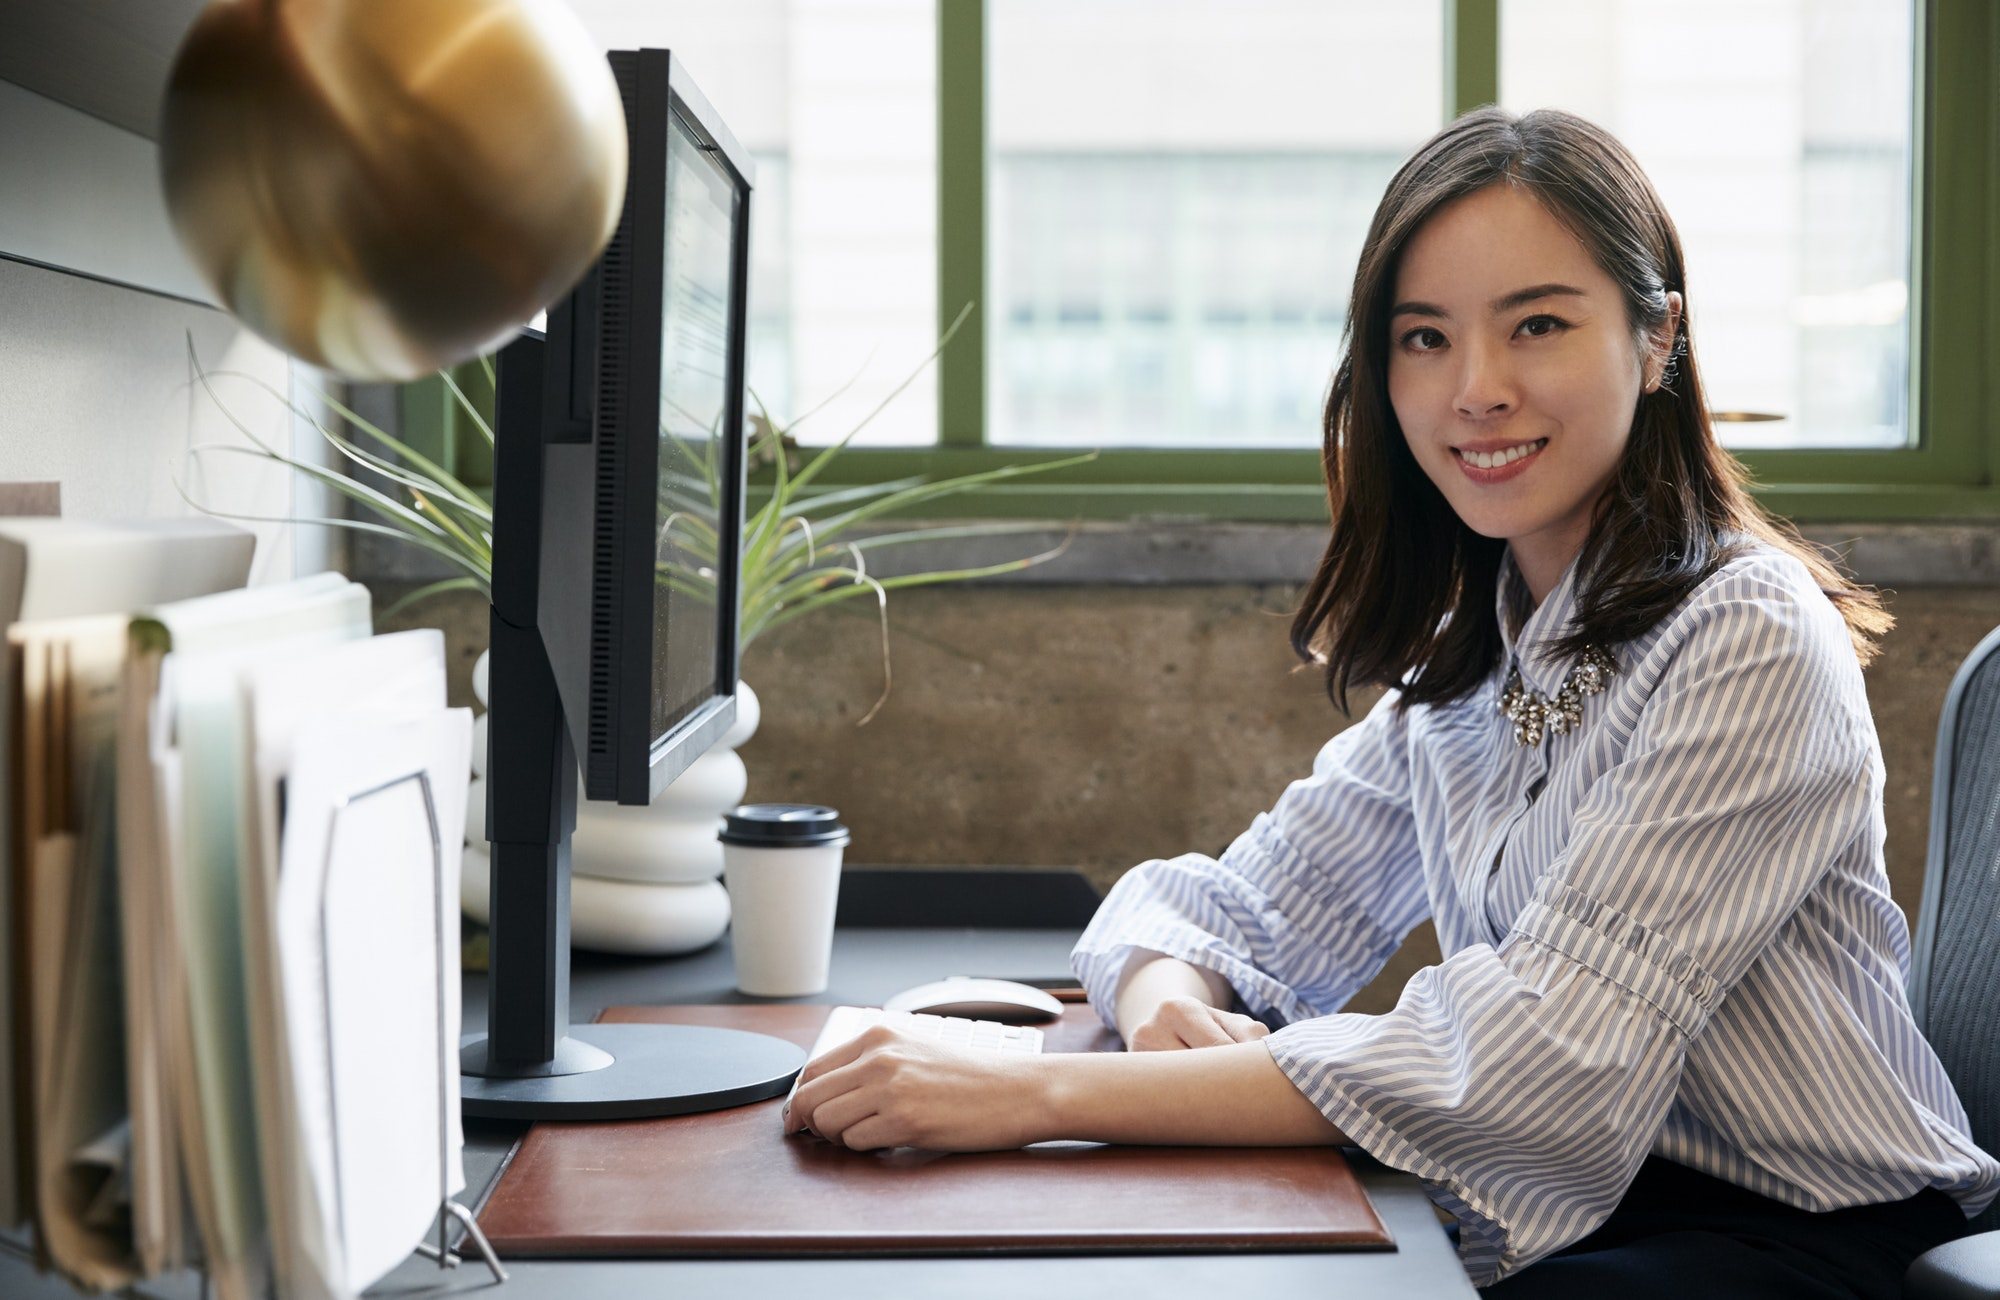 Chinese woman at a computer in an office smiling to camera